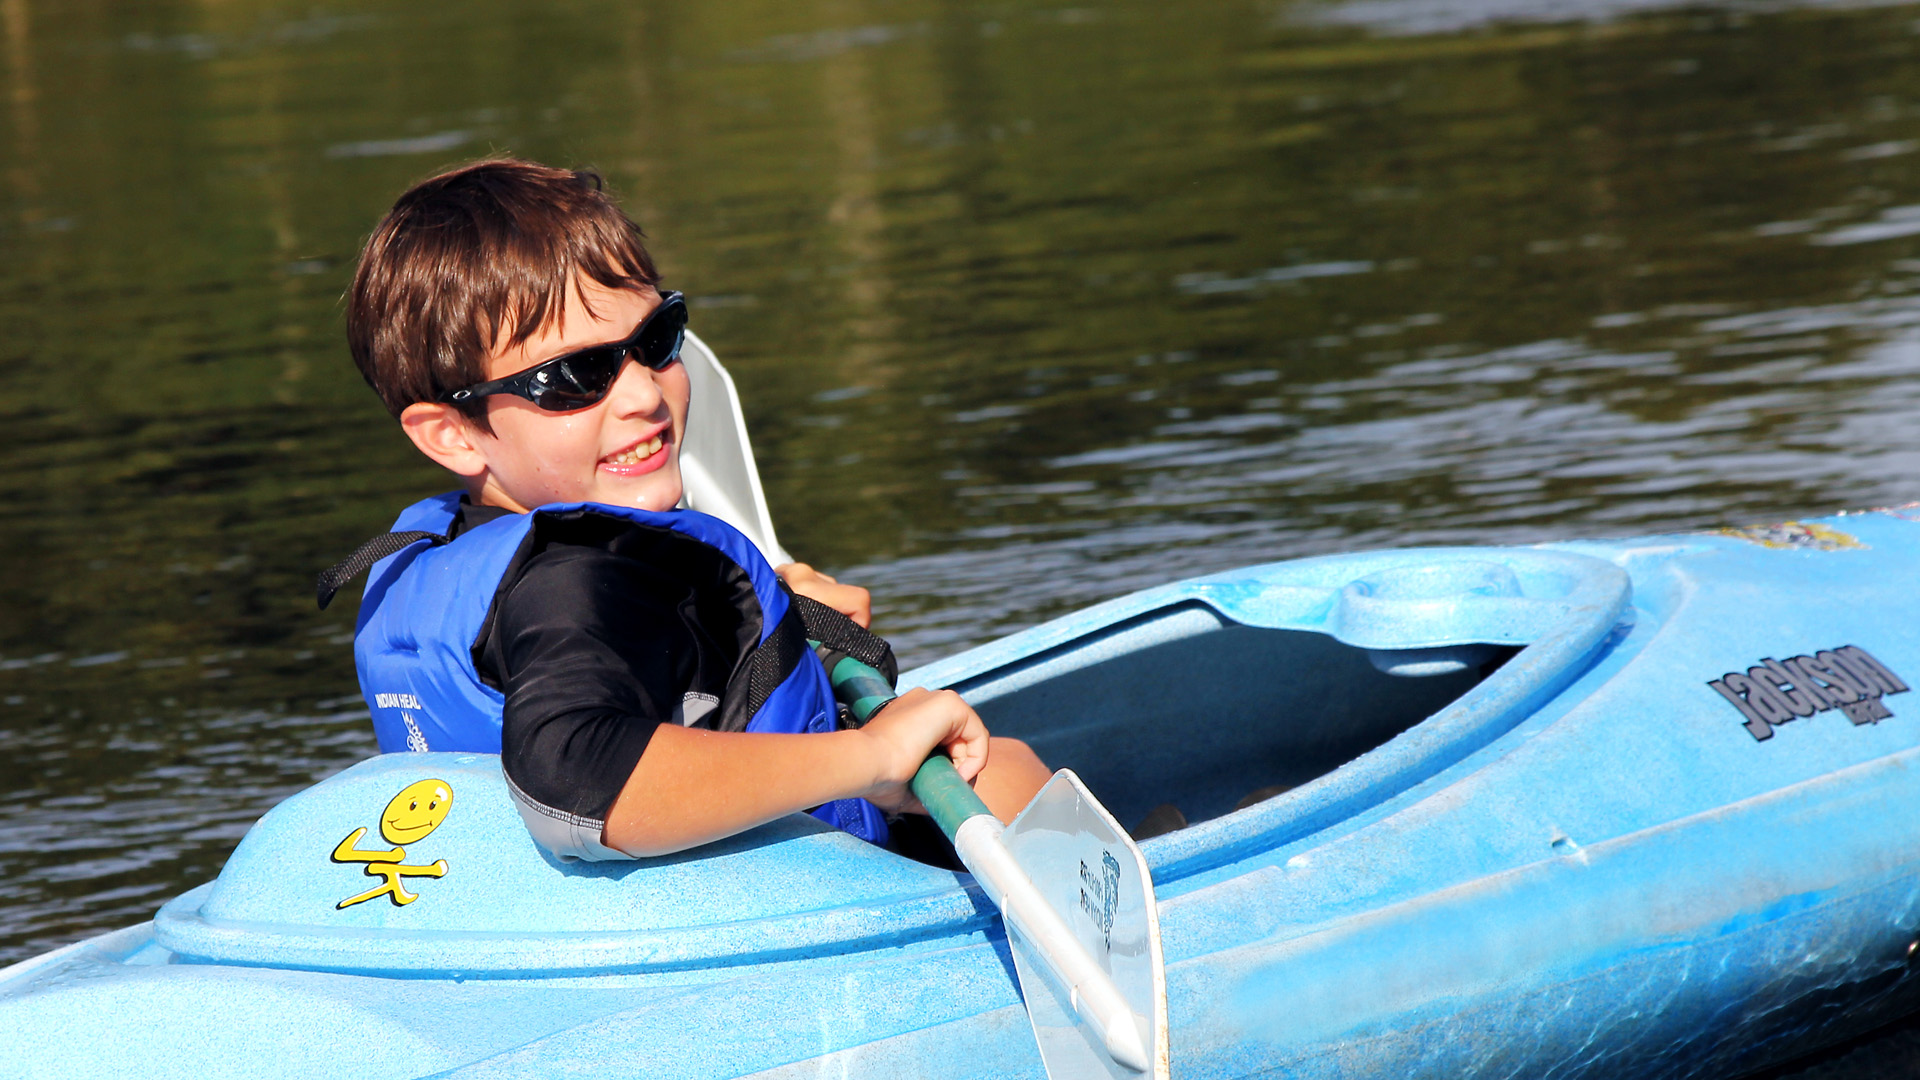 young boy floating in kayak on calm waters Indian Head Canoeing Rafting Kayaking Tubing Delaware River